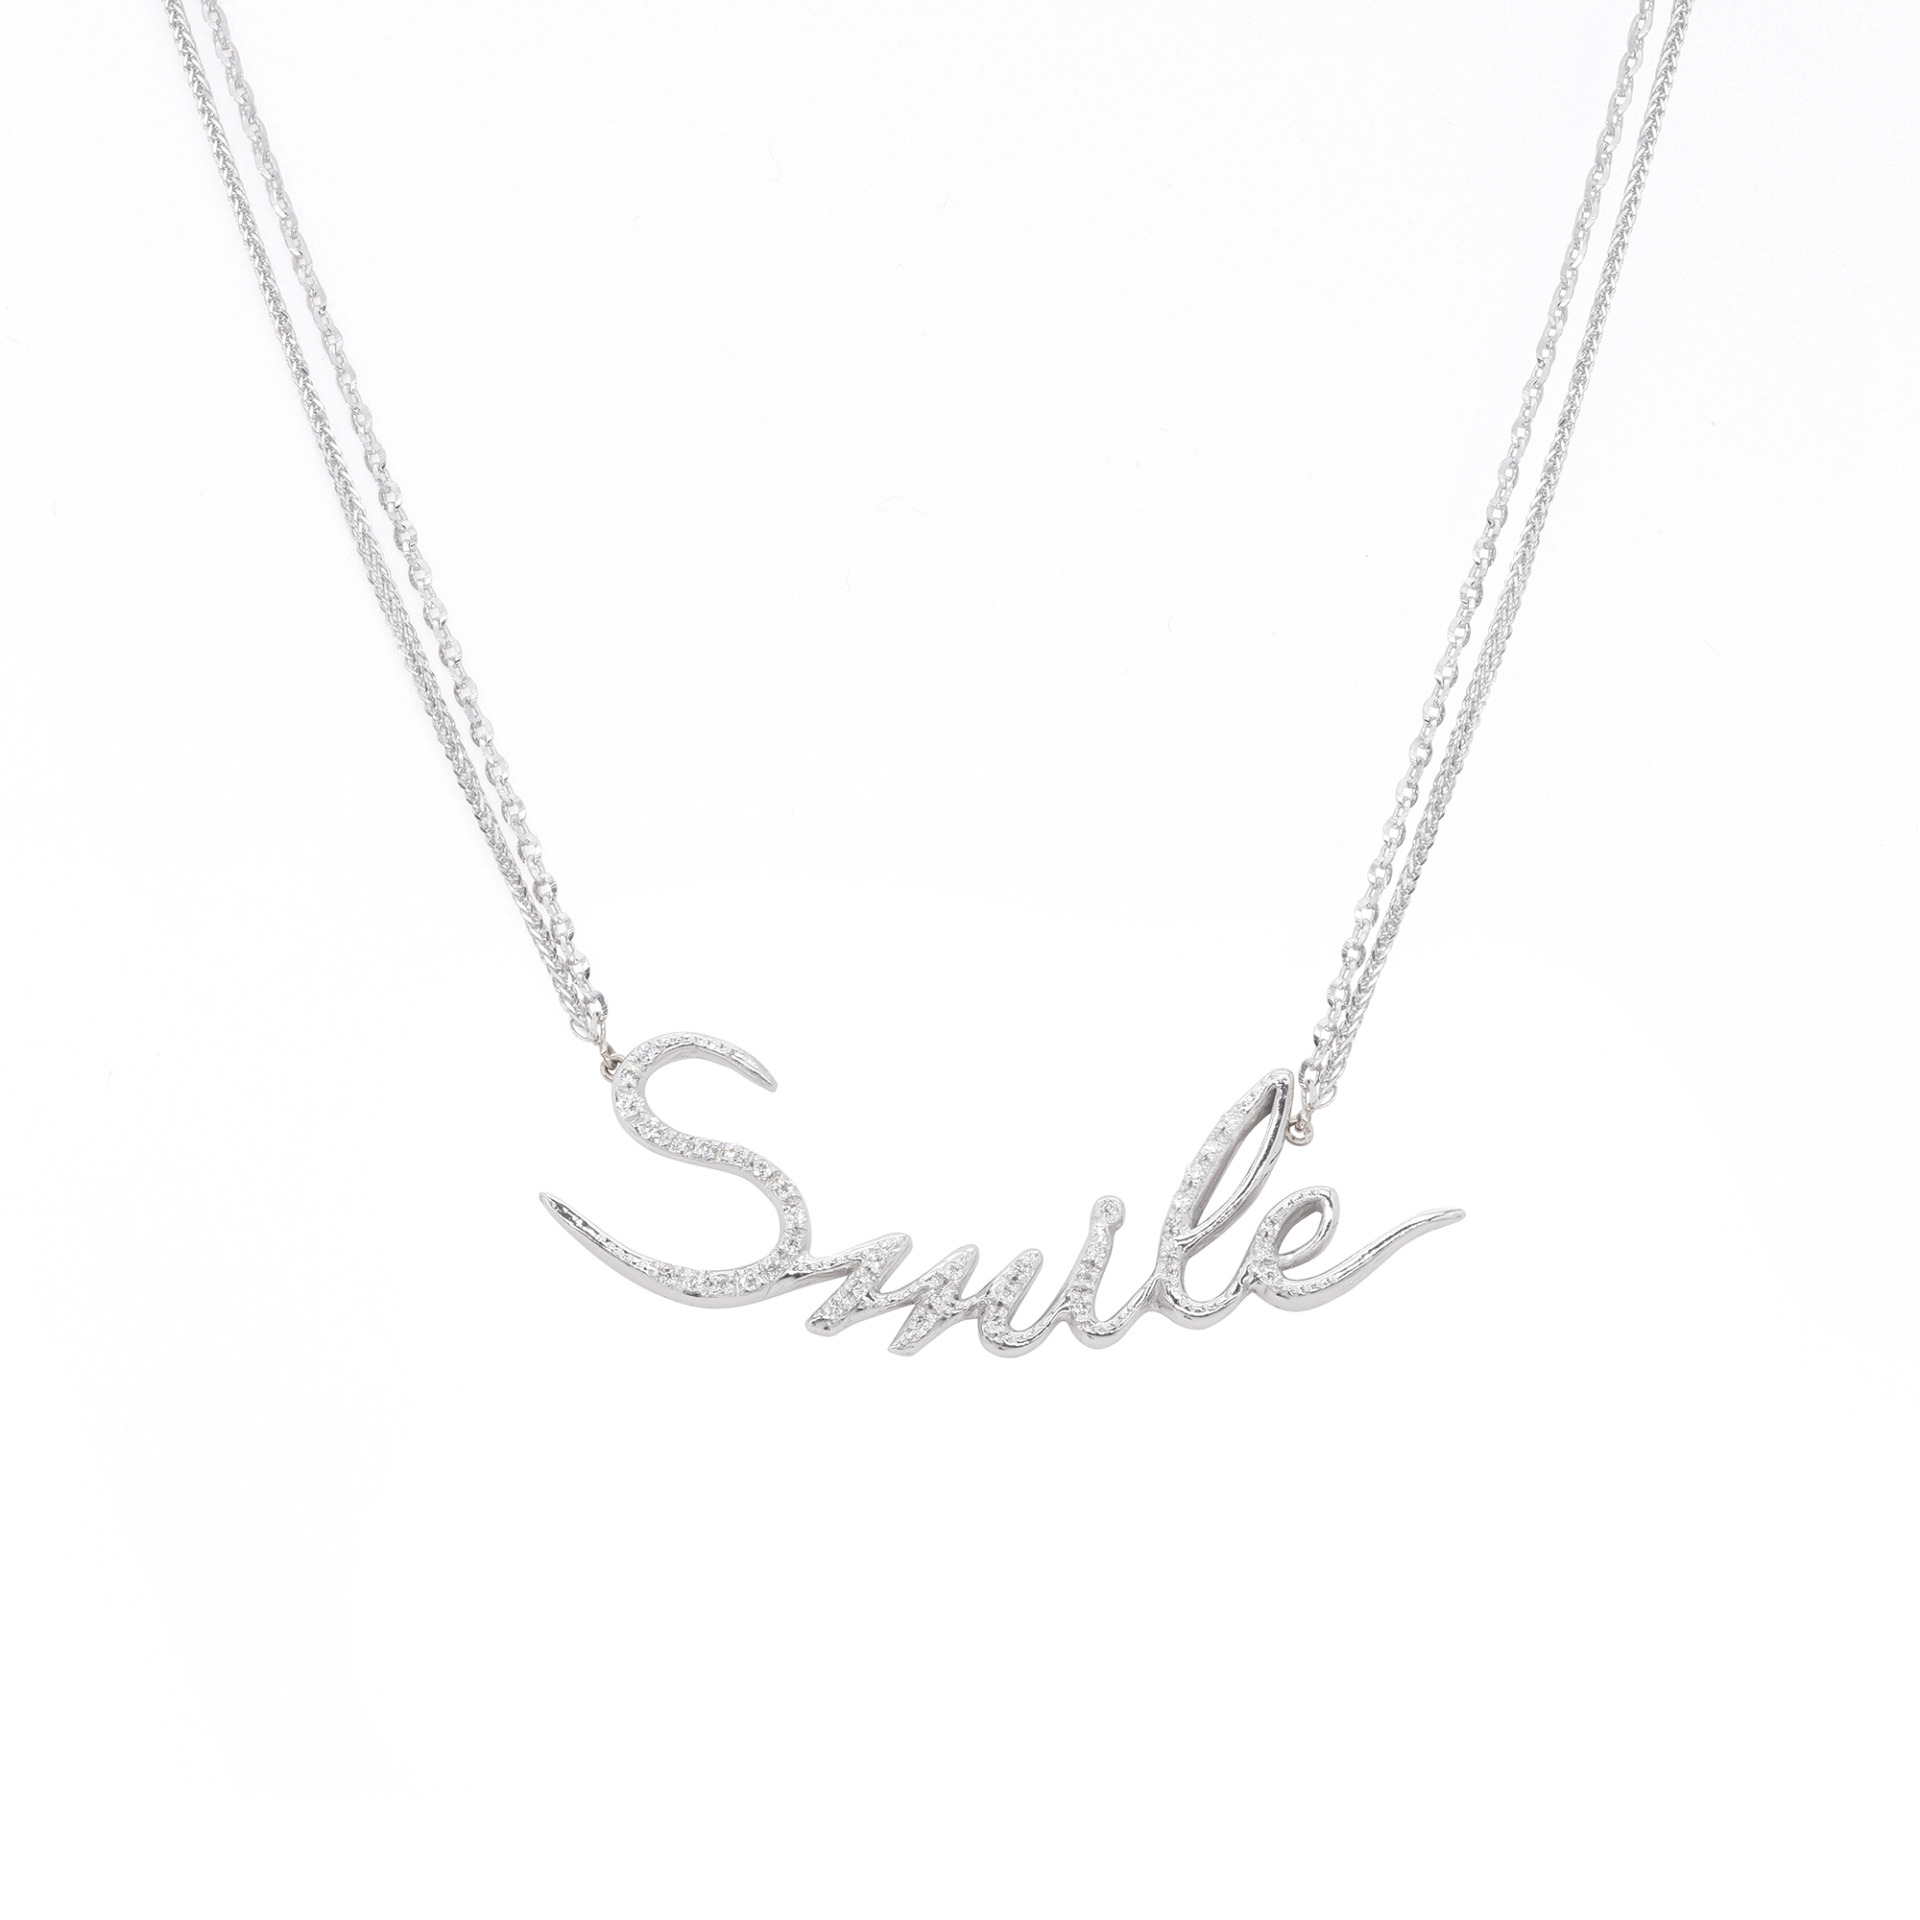 d'Avossa Necklace in 18kt White Gold and White Diamonds